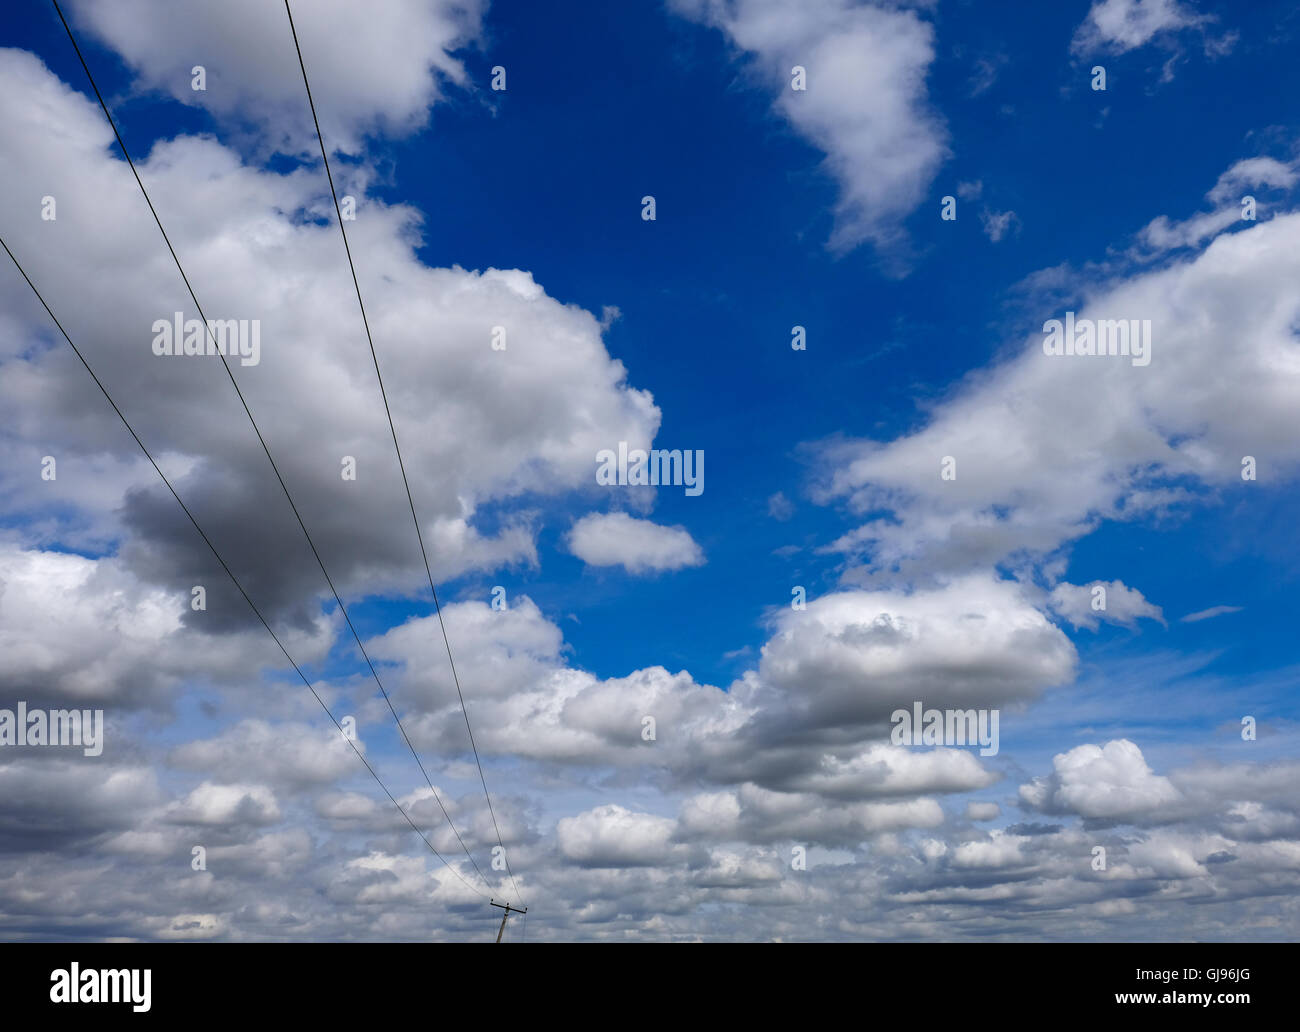 Electricity Pole And Cables Stock Photos & Electricity Pole And